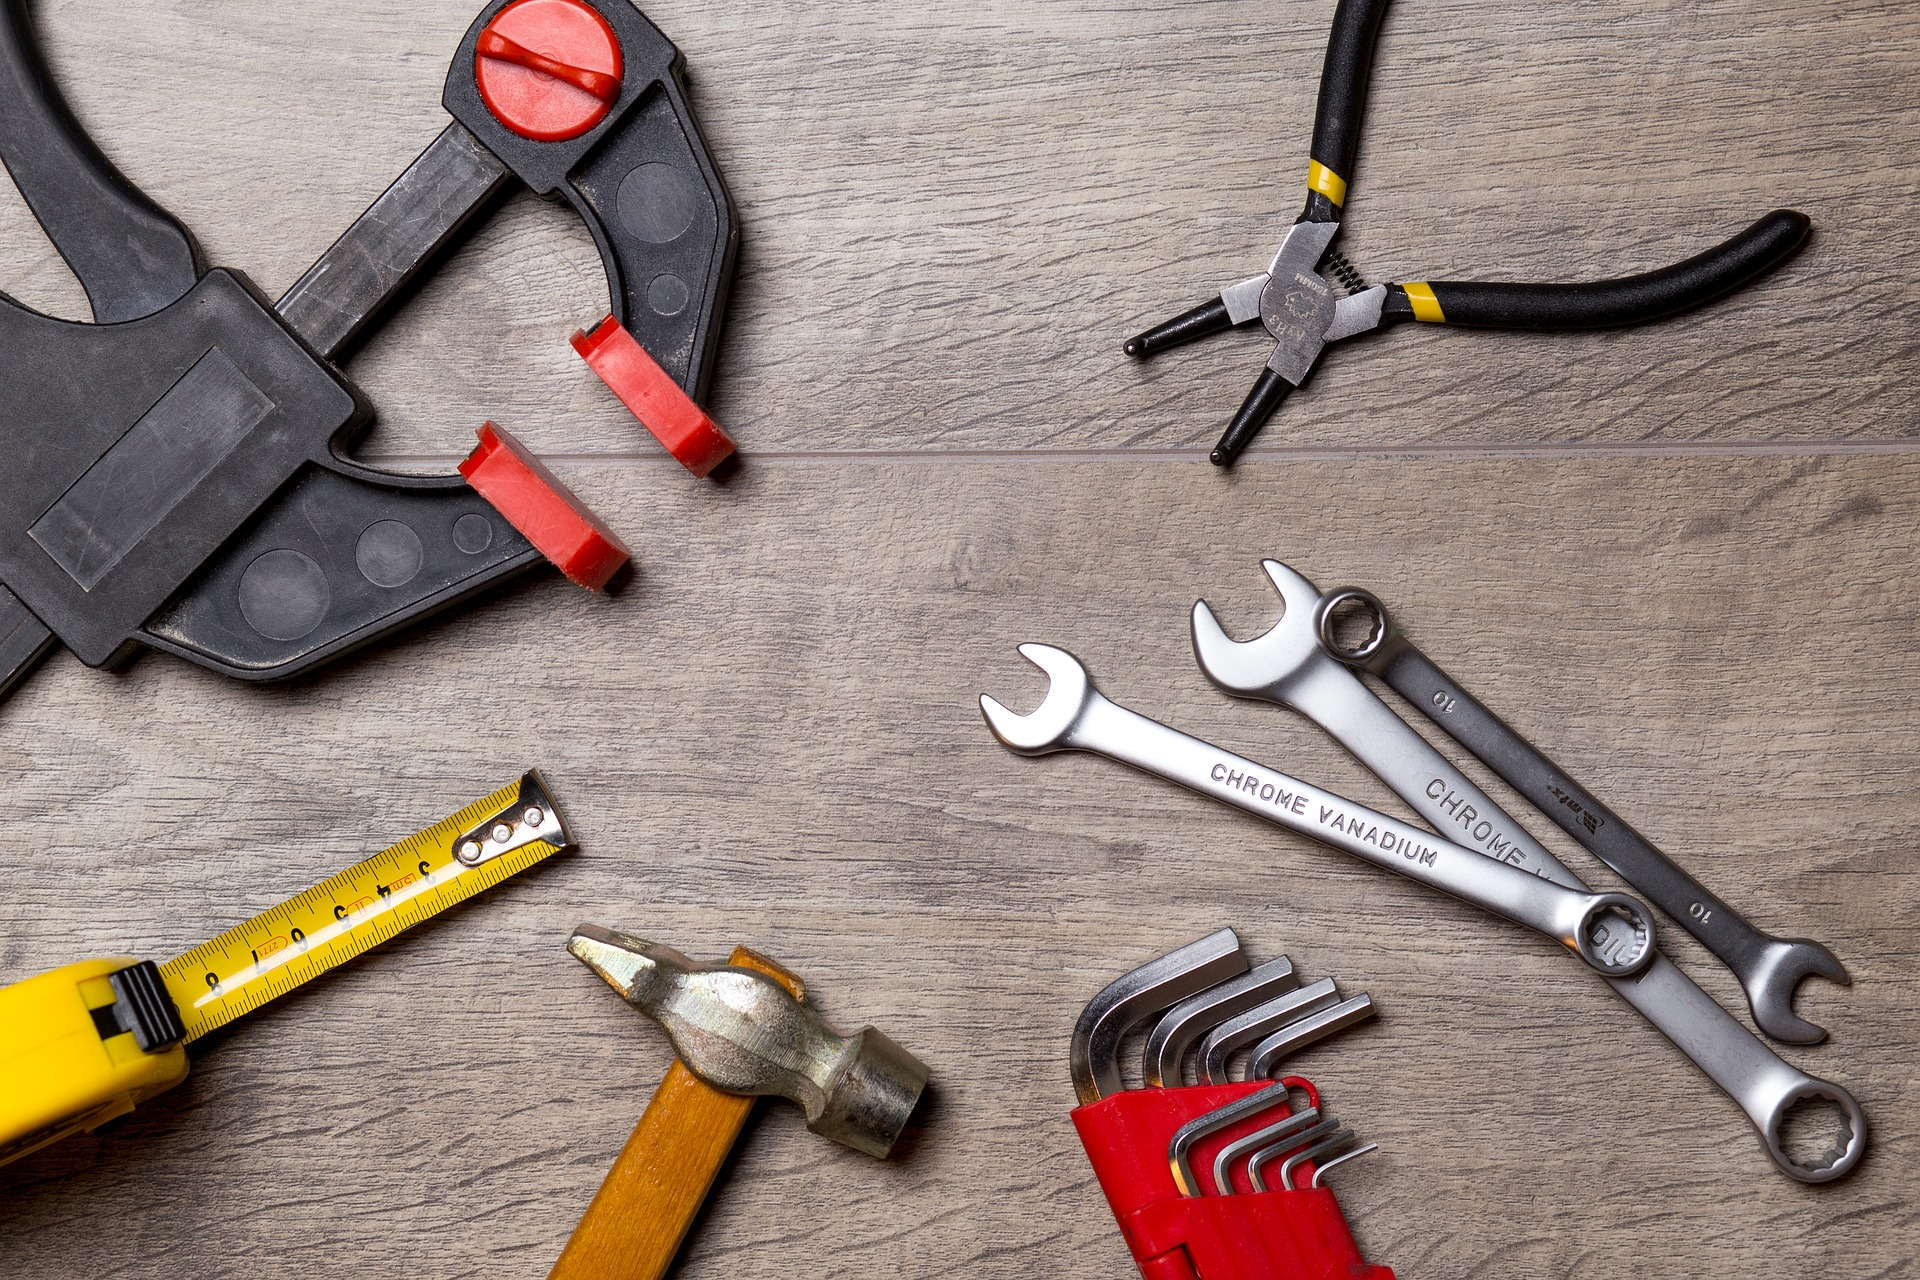 Tools for assembling Christmas presents or furniture items